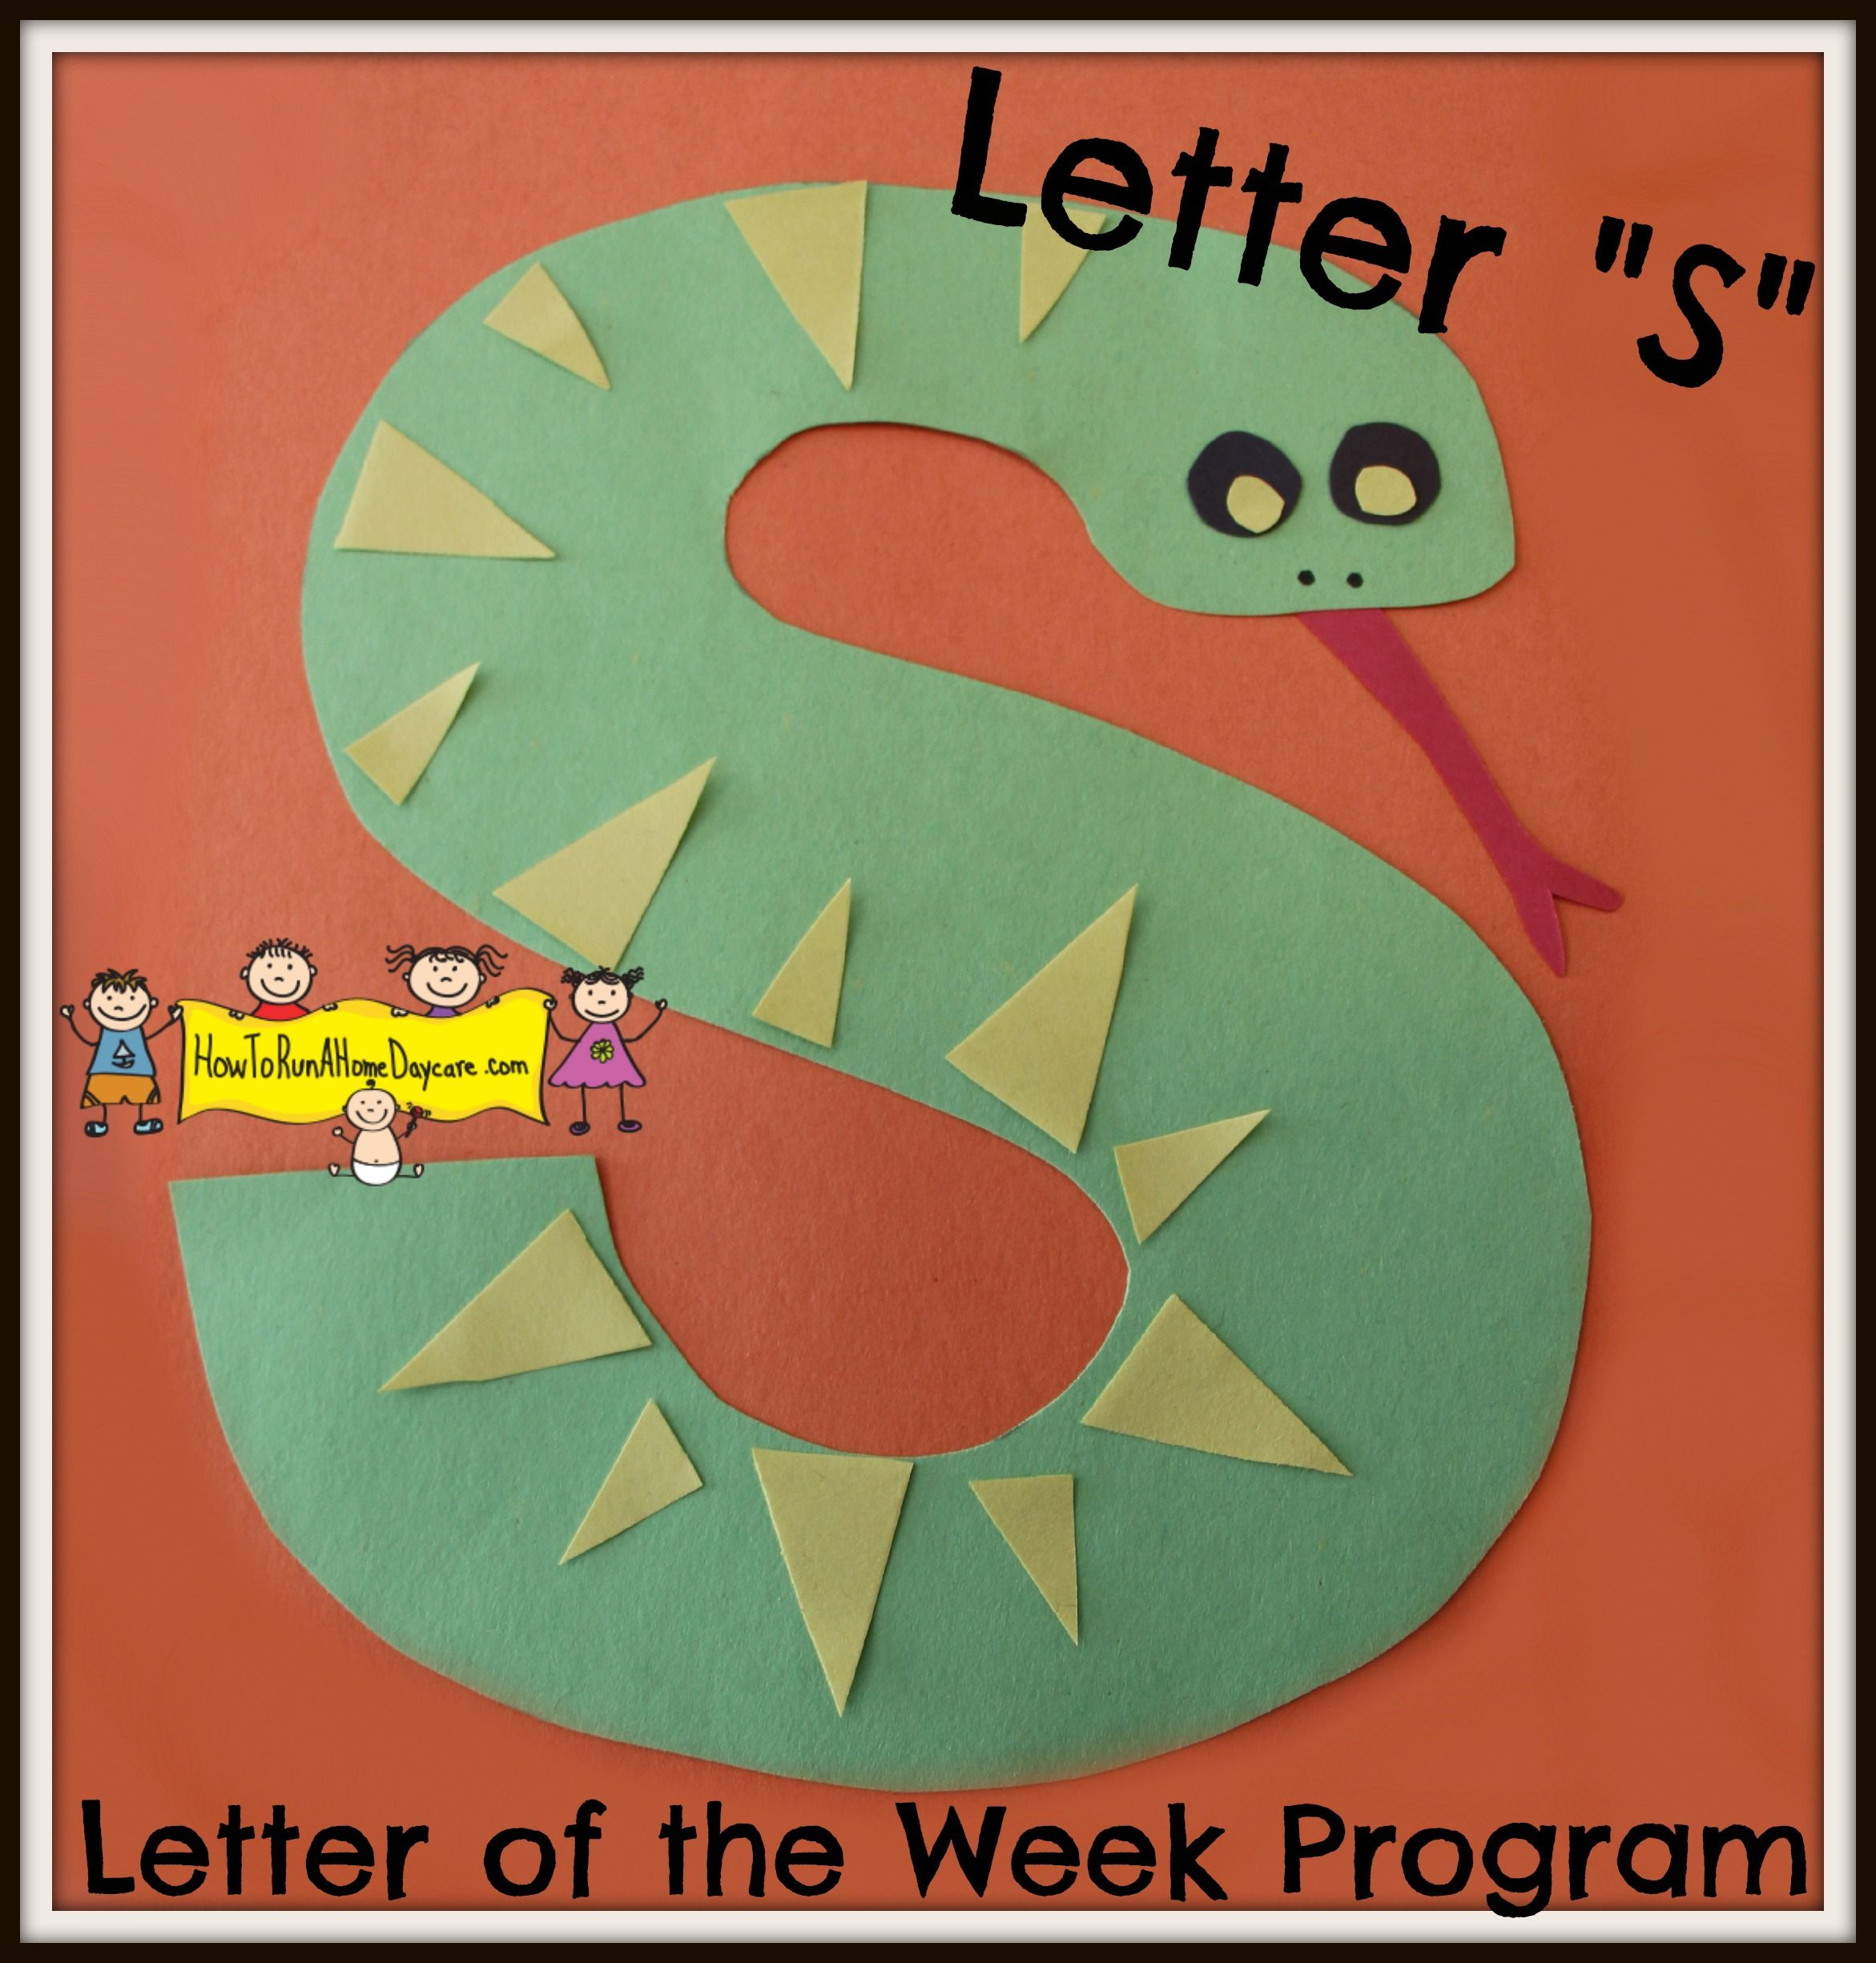 Letter s arts and crafts for preschoolers - Letter S Letter Of The Week Program